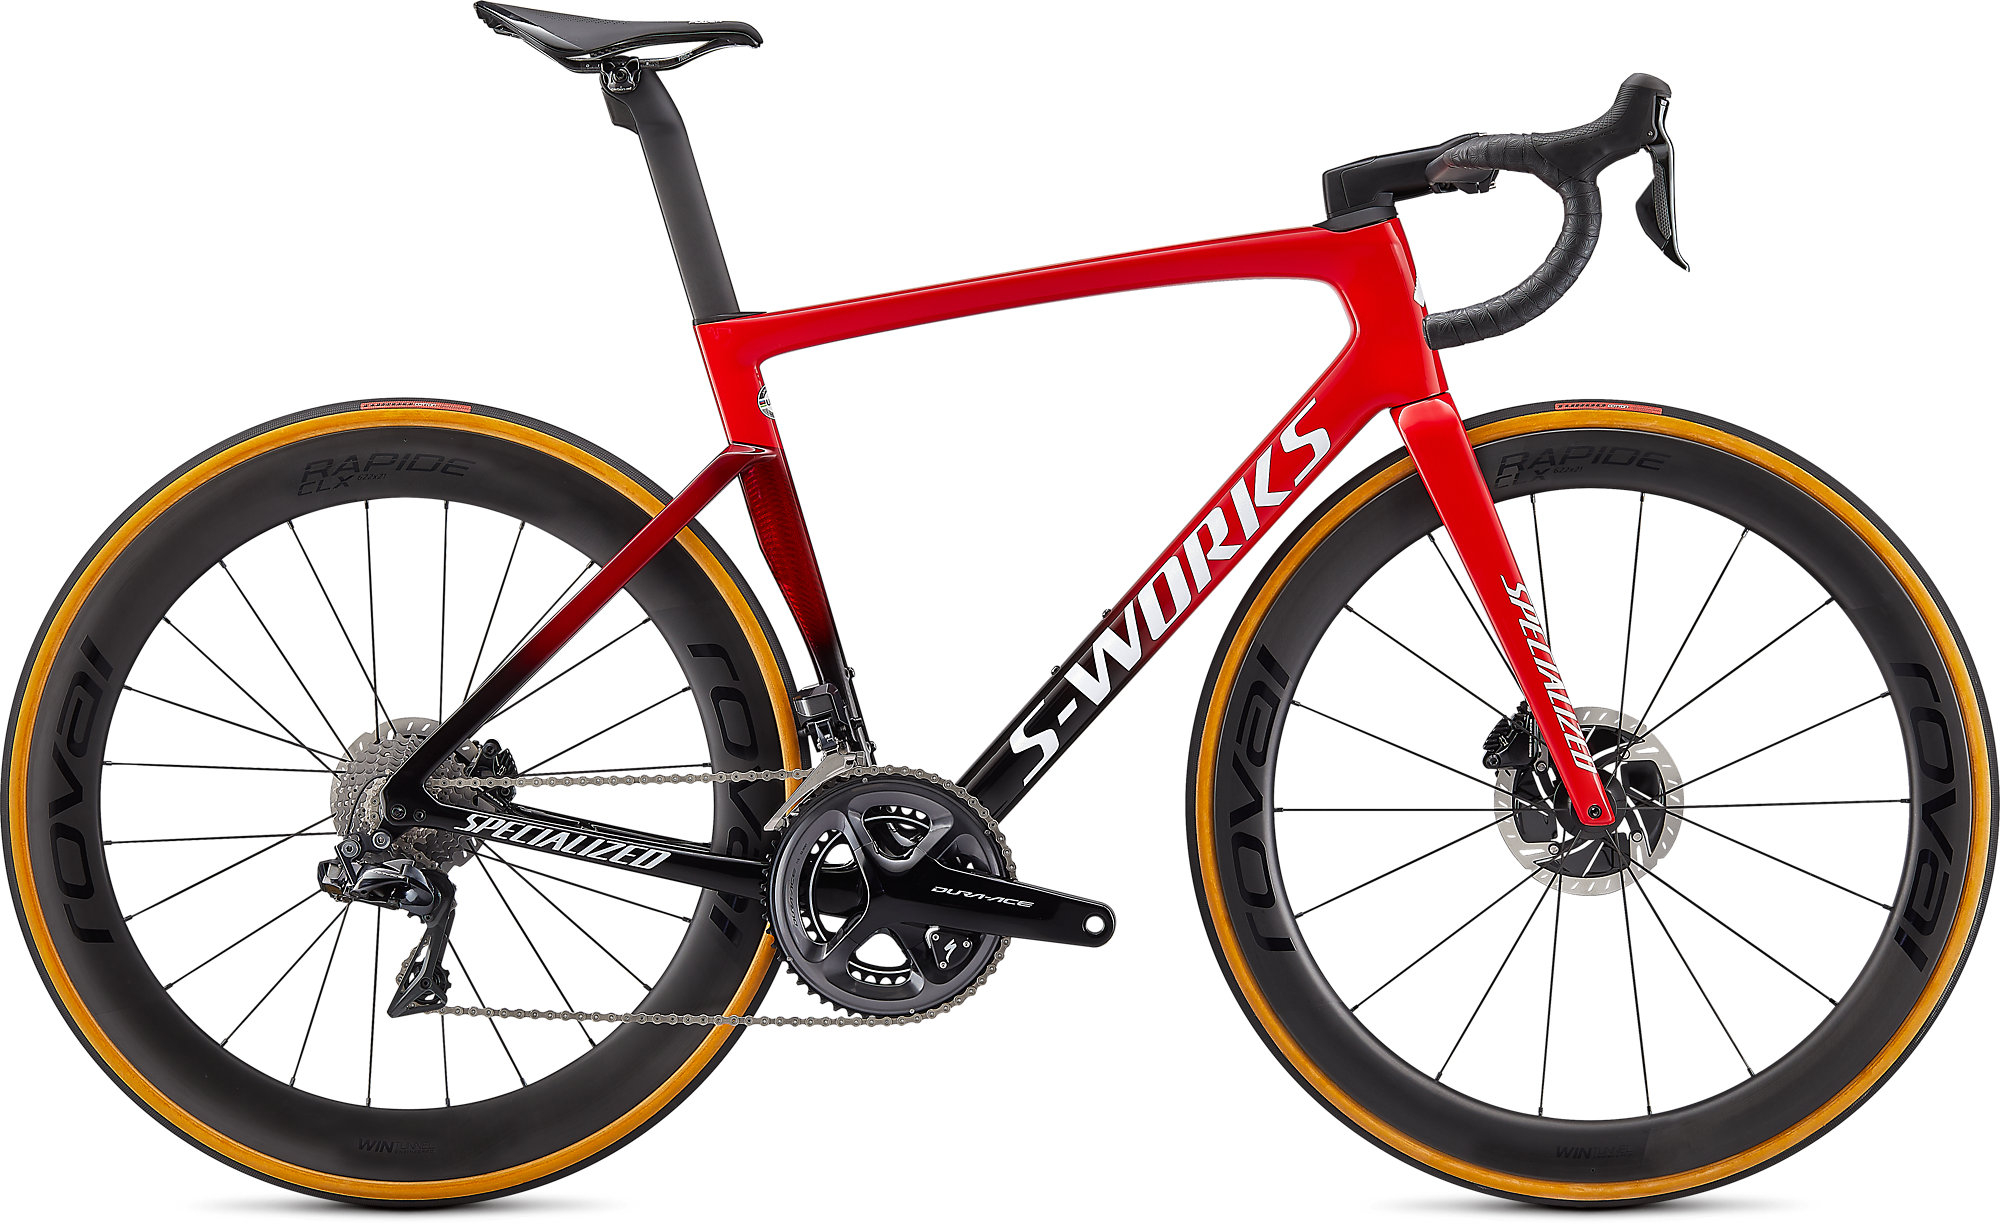 2021 Specialized S-Works Tarmac SL7 - Dura Ace Di2 - Specialized Concept Store